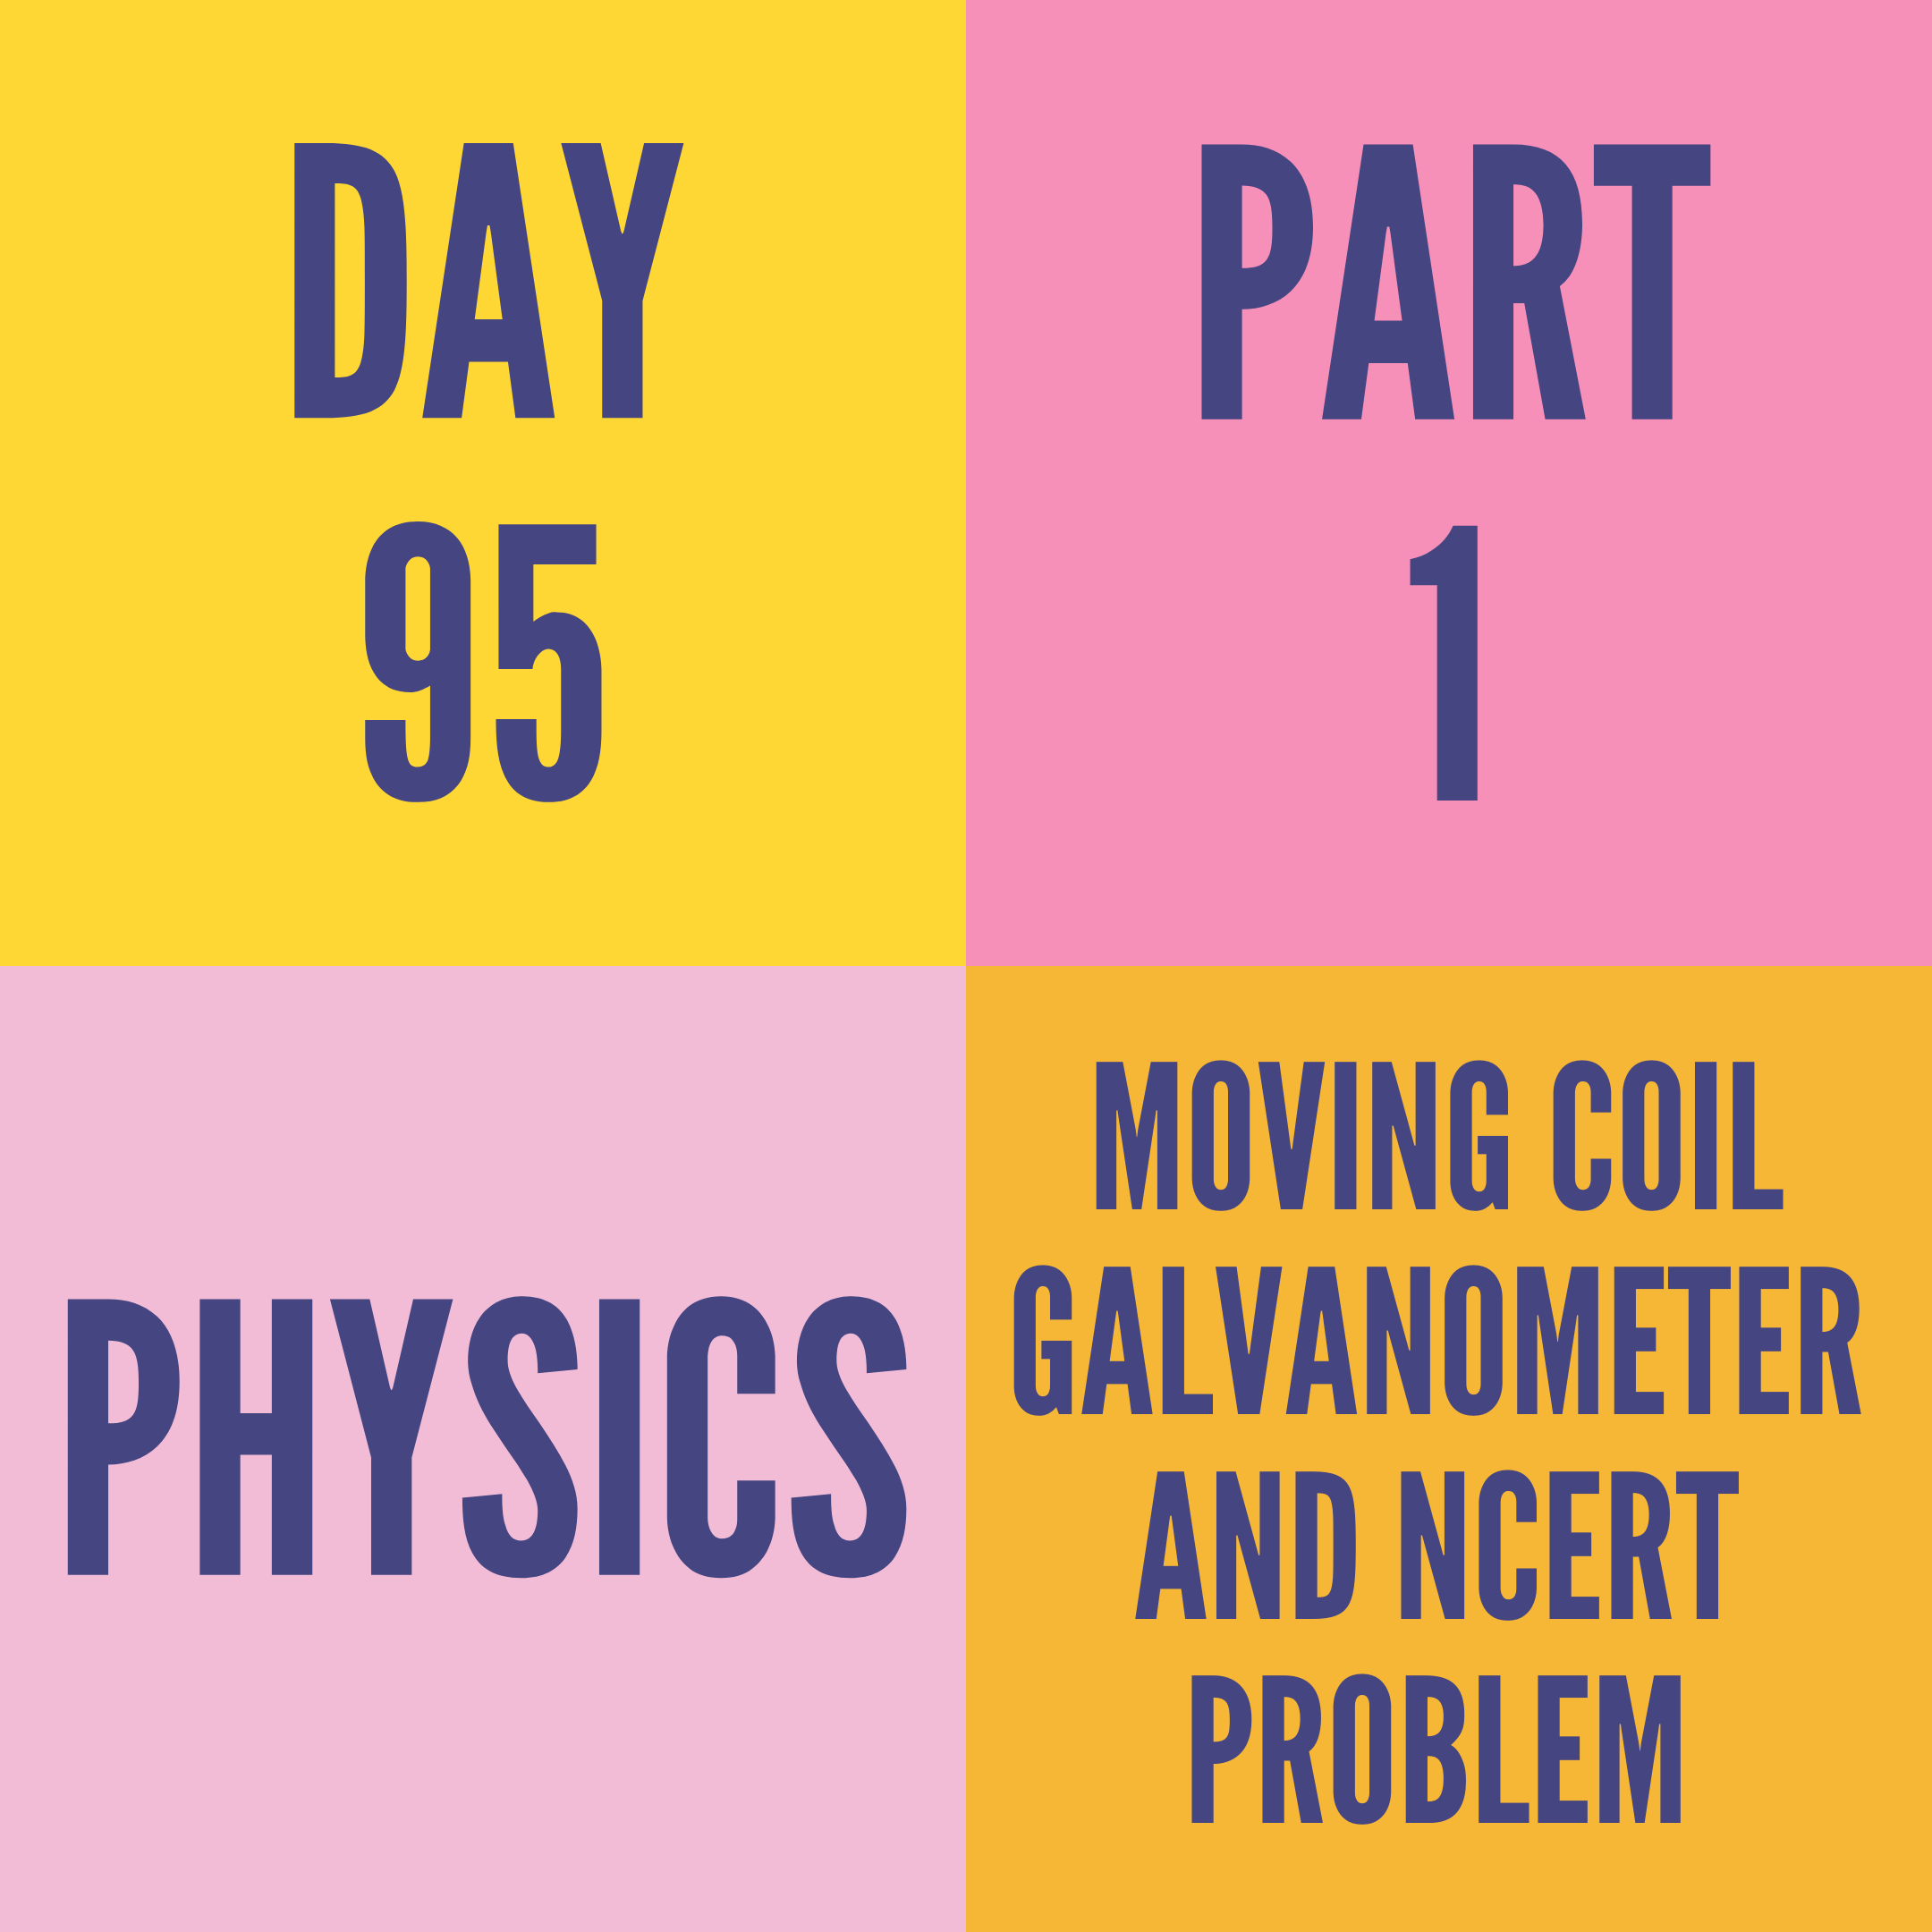 DAY-95 PART-1 MOVING COIL GALVANOMETER AND NCERT PROBLEM